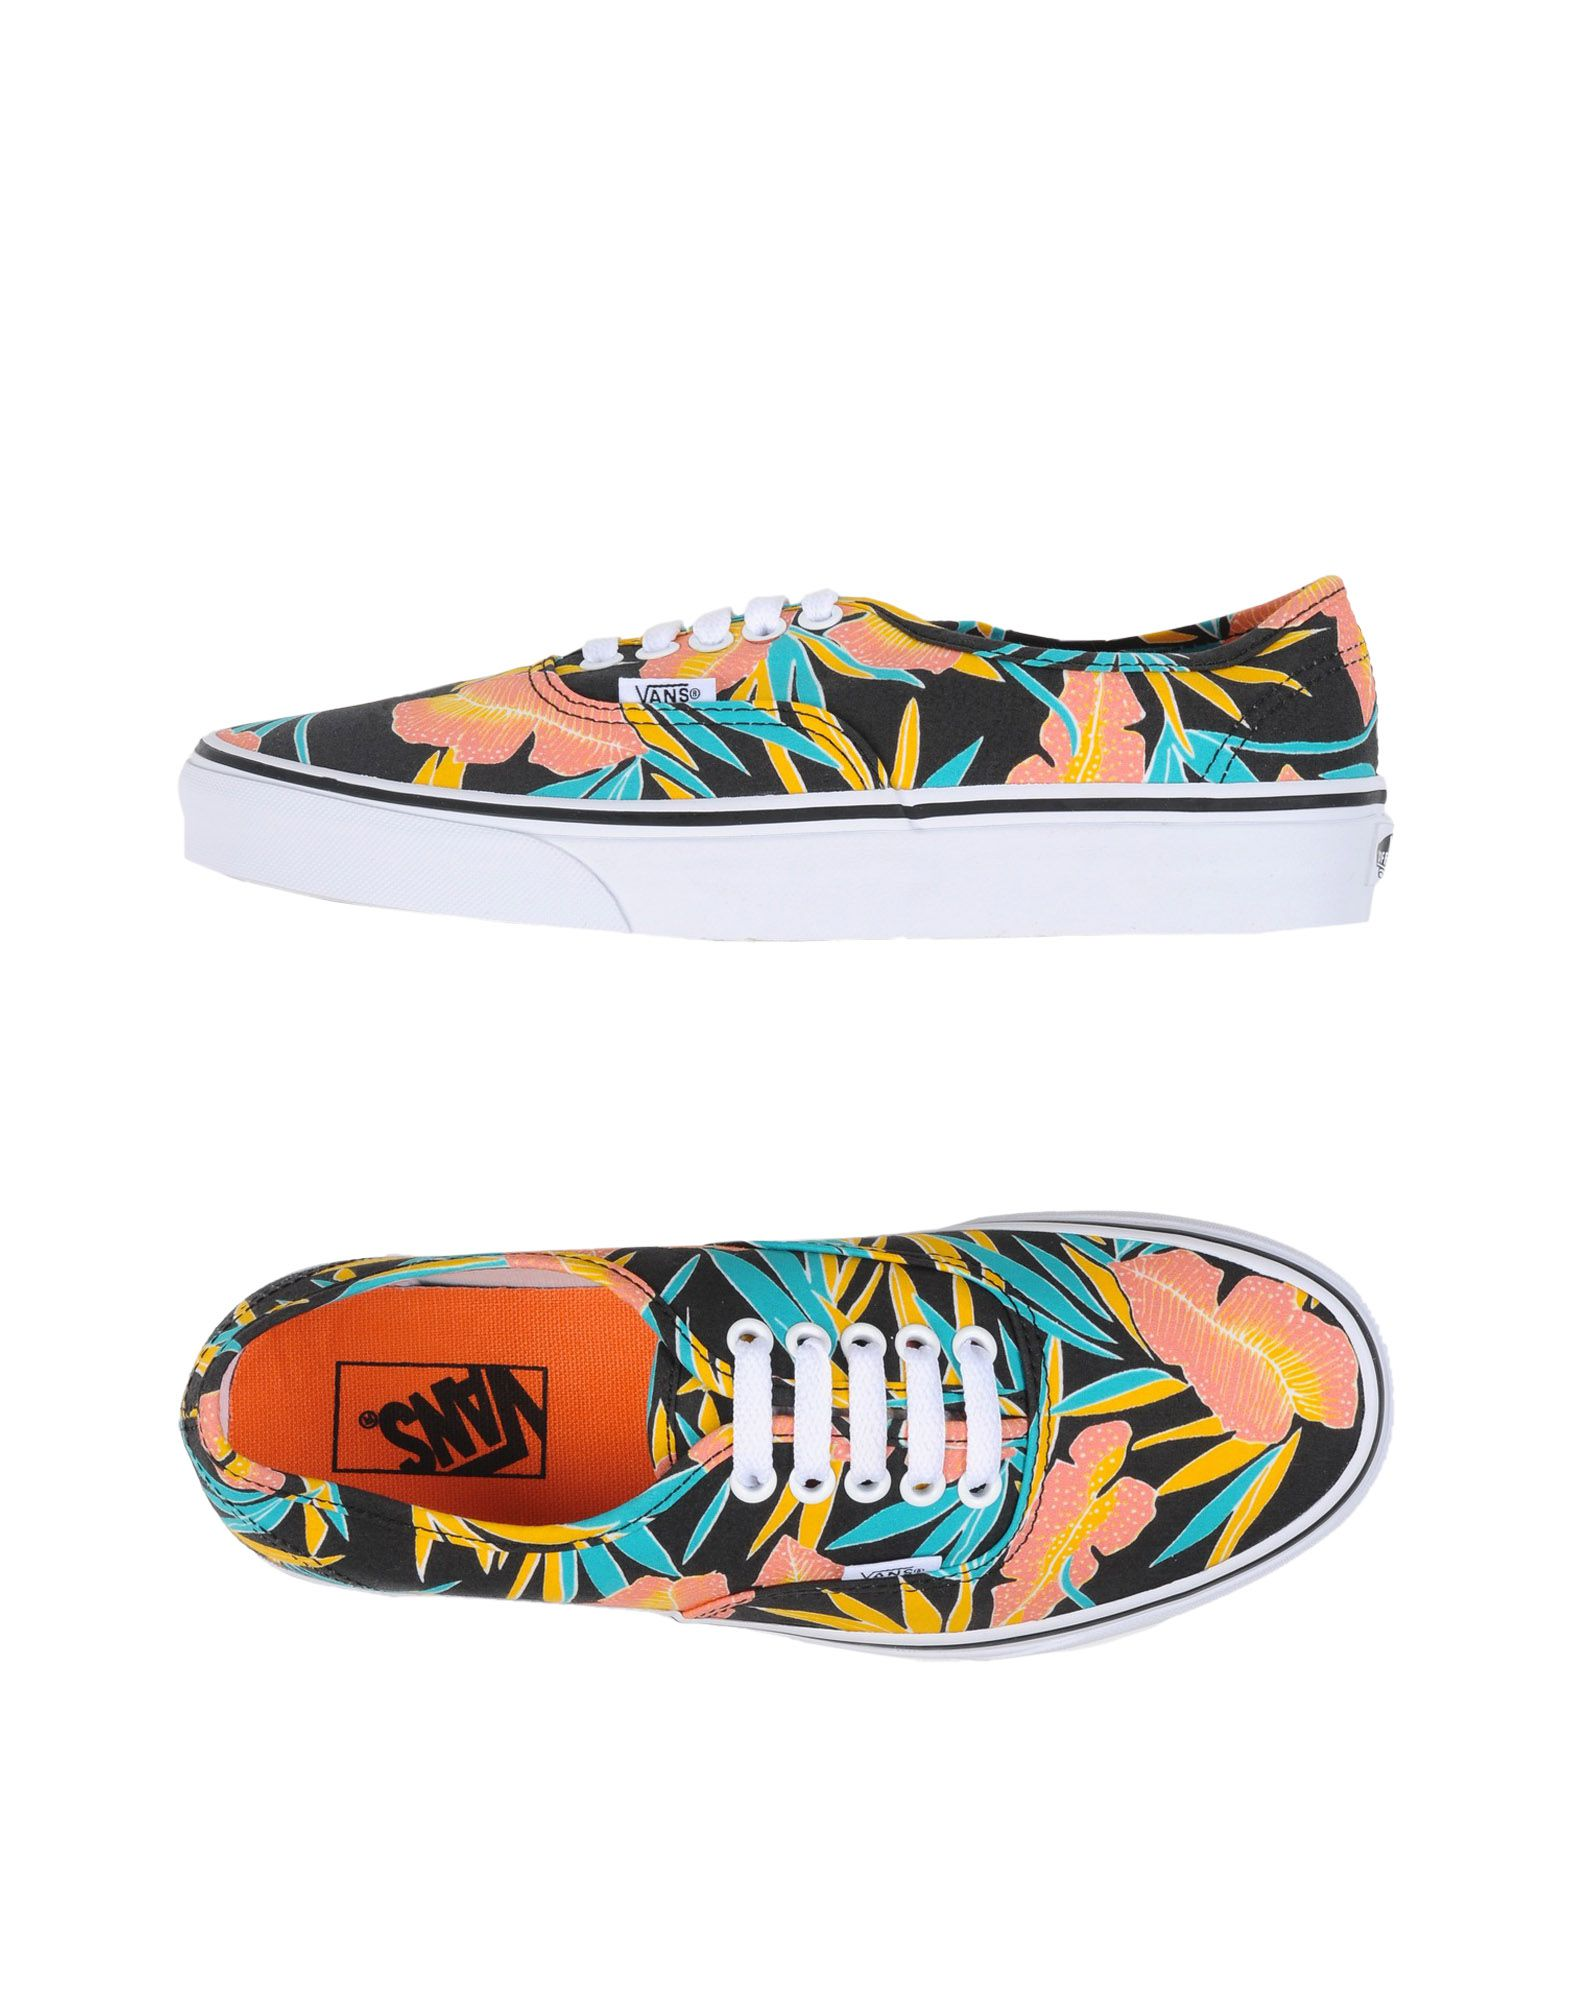 Vans Ua Authentic - - Tropical Leaves - Authentic Sneakers - Women Vans Sneakers online on  Australia - 11201354ES 883cb2